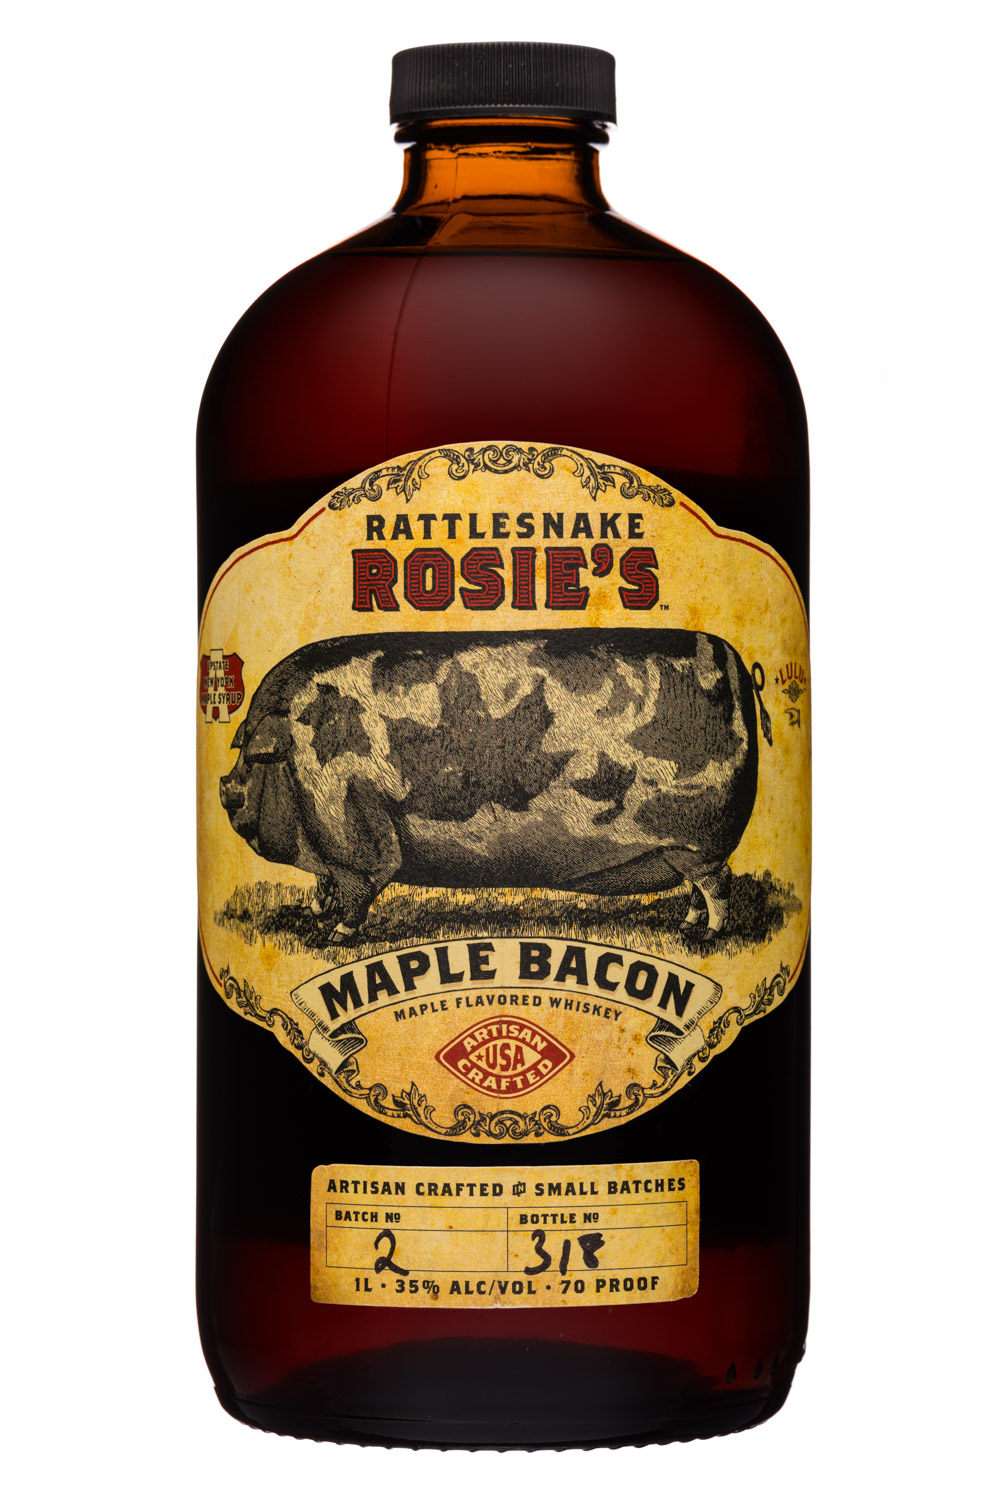 Rattlesnake Rosie's - Maple Bacon